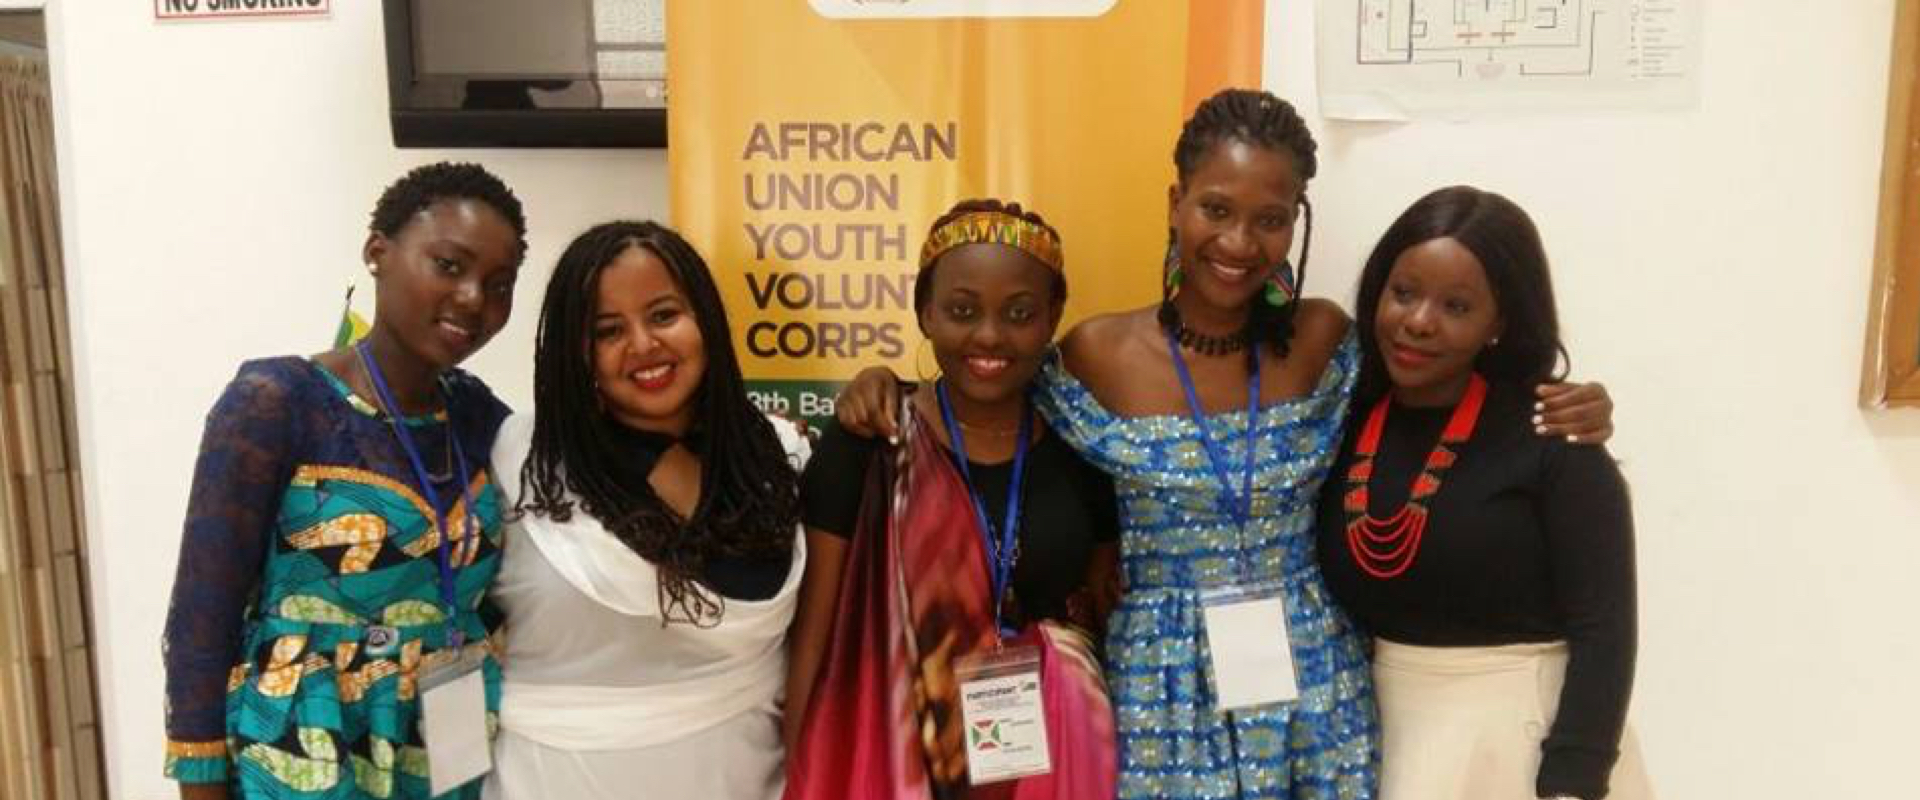 Marly Samuel @African Union Youth Volunteers Corp (AU-YVC) 8th Batch Deployment Training held in Accra Ghana